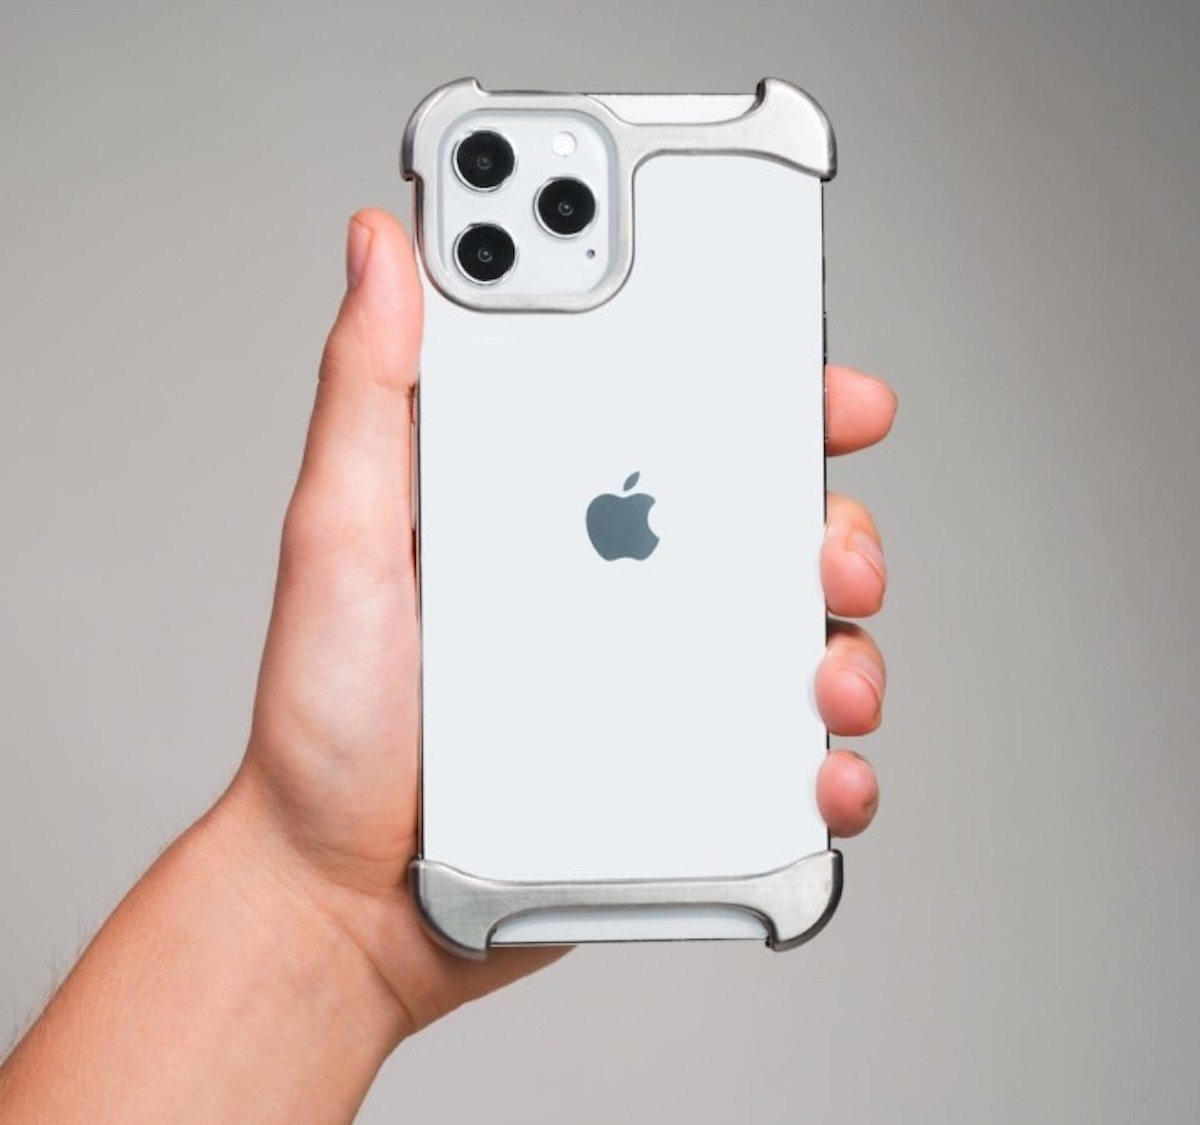 This new iPhone 12 cover is